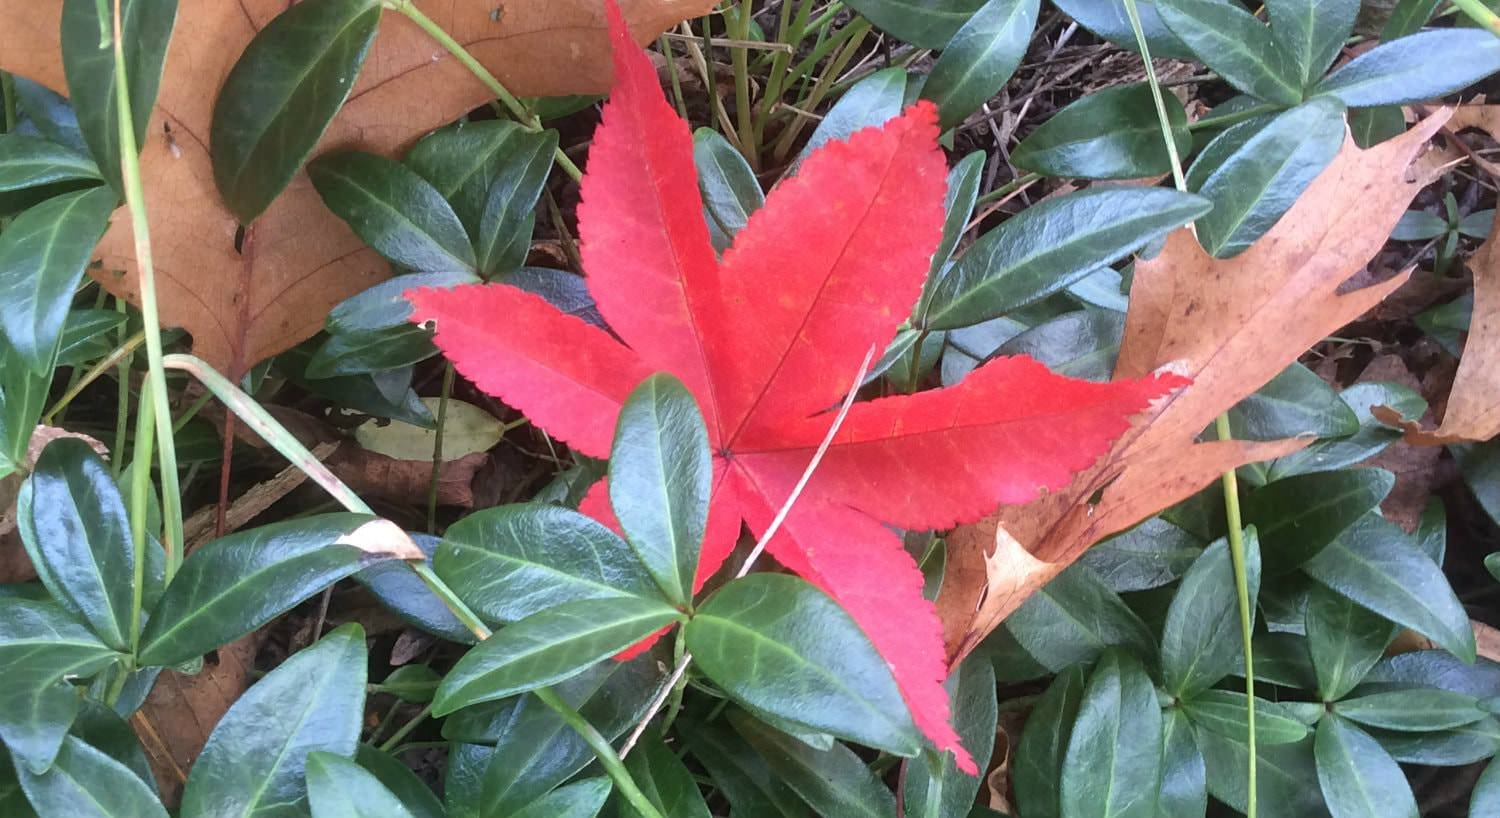 Close up view of green and brown leaves with one vibrant red leaf